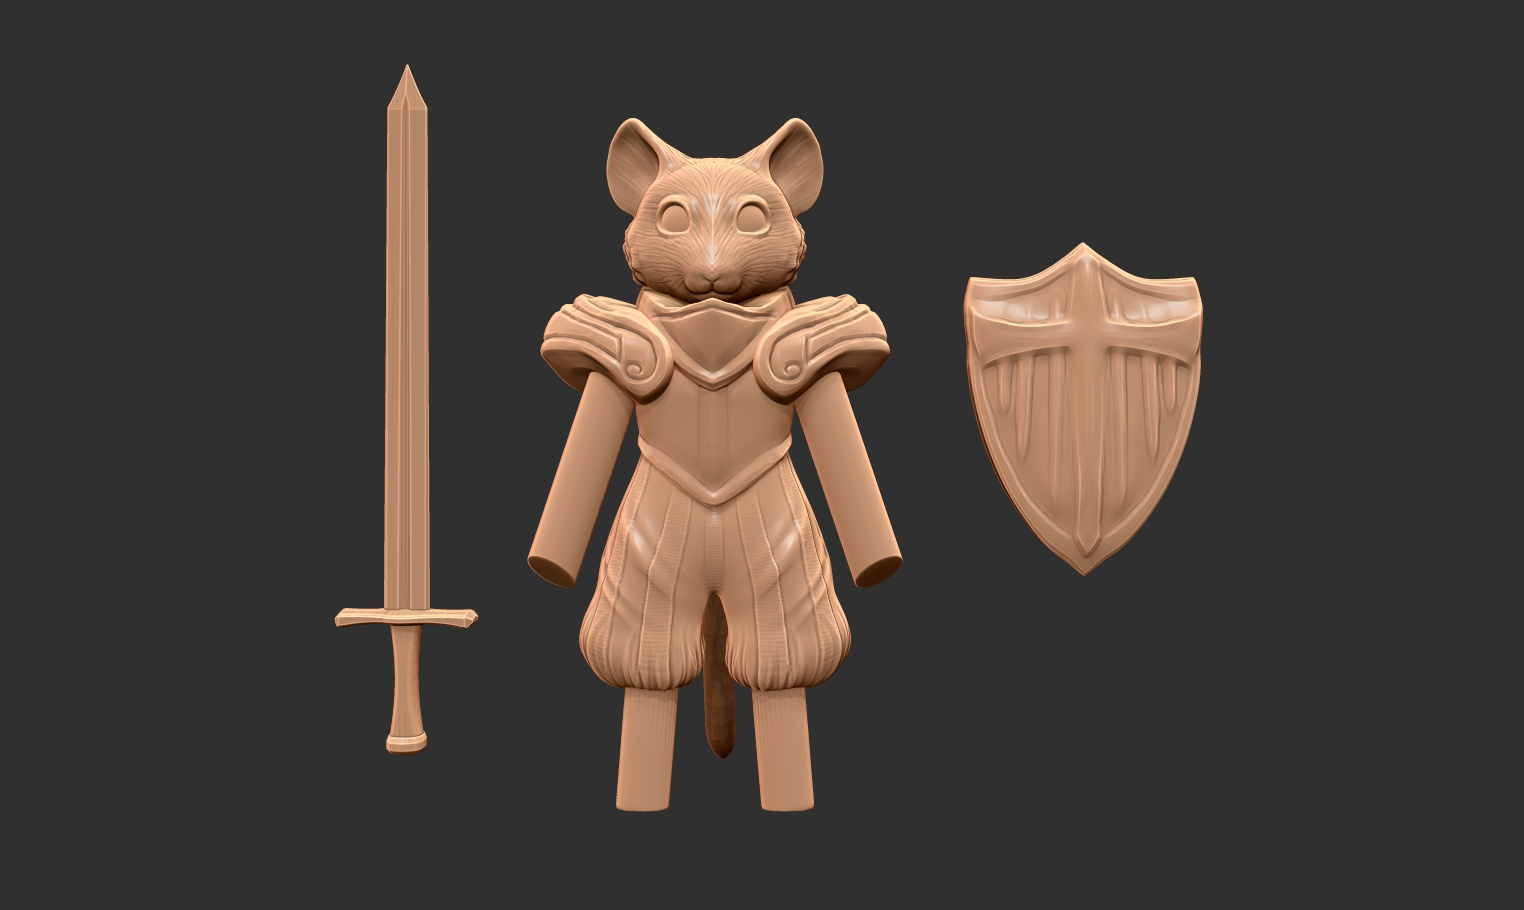 Starting Point - Time to make some armor!